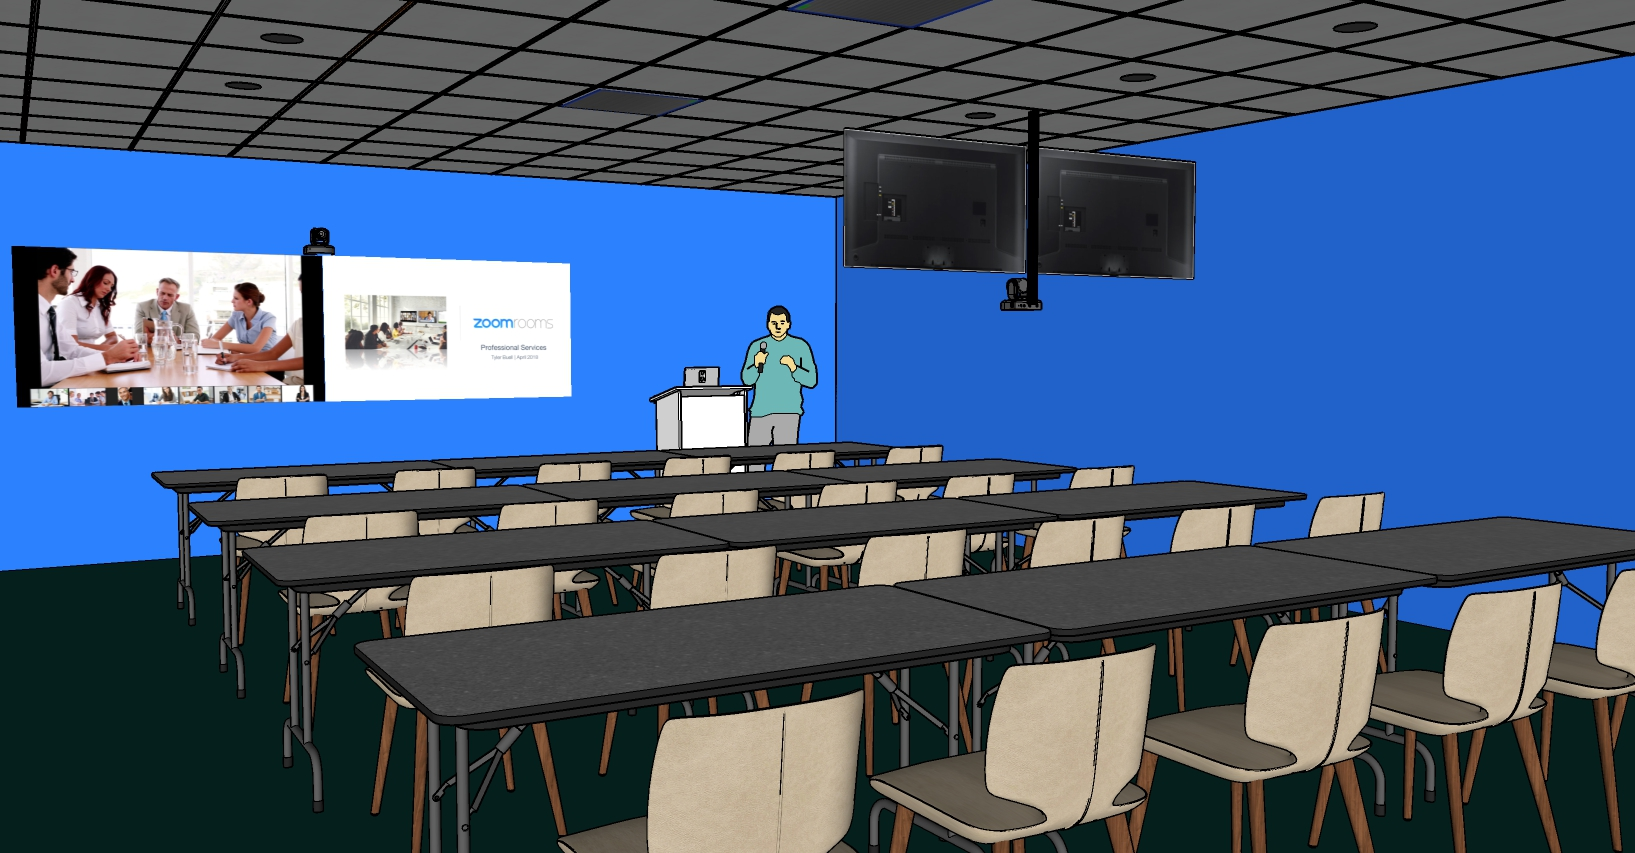 Zoom_Rooms_ProAV_Training_Classroom__Audience_.jpg